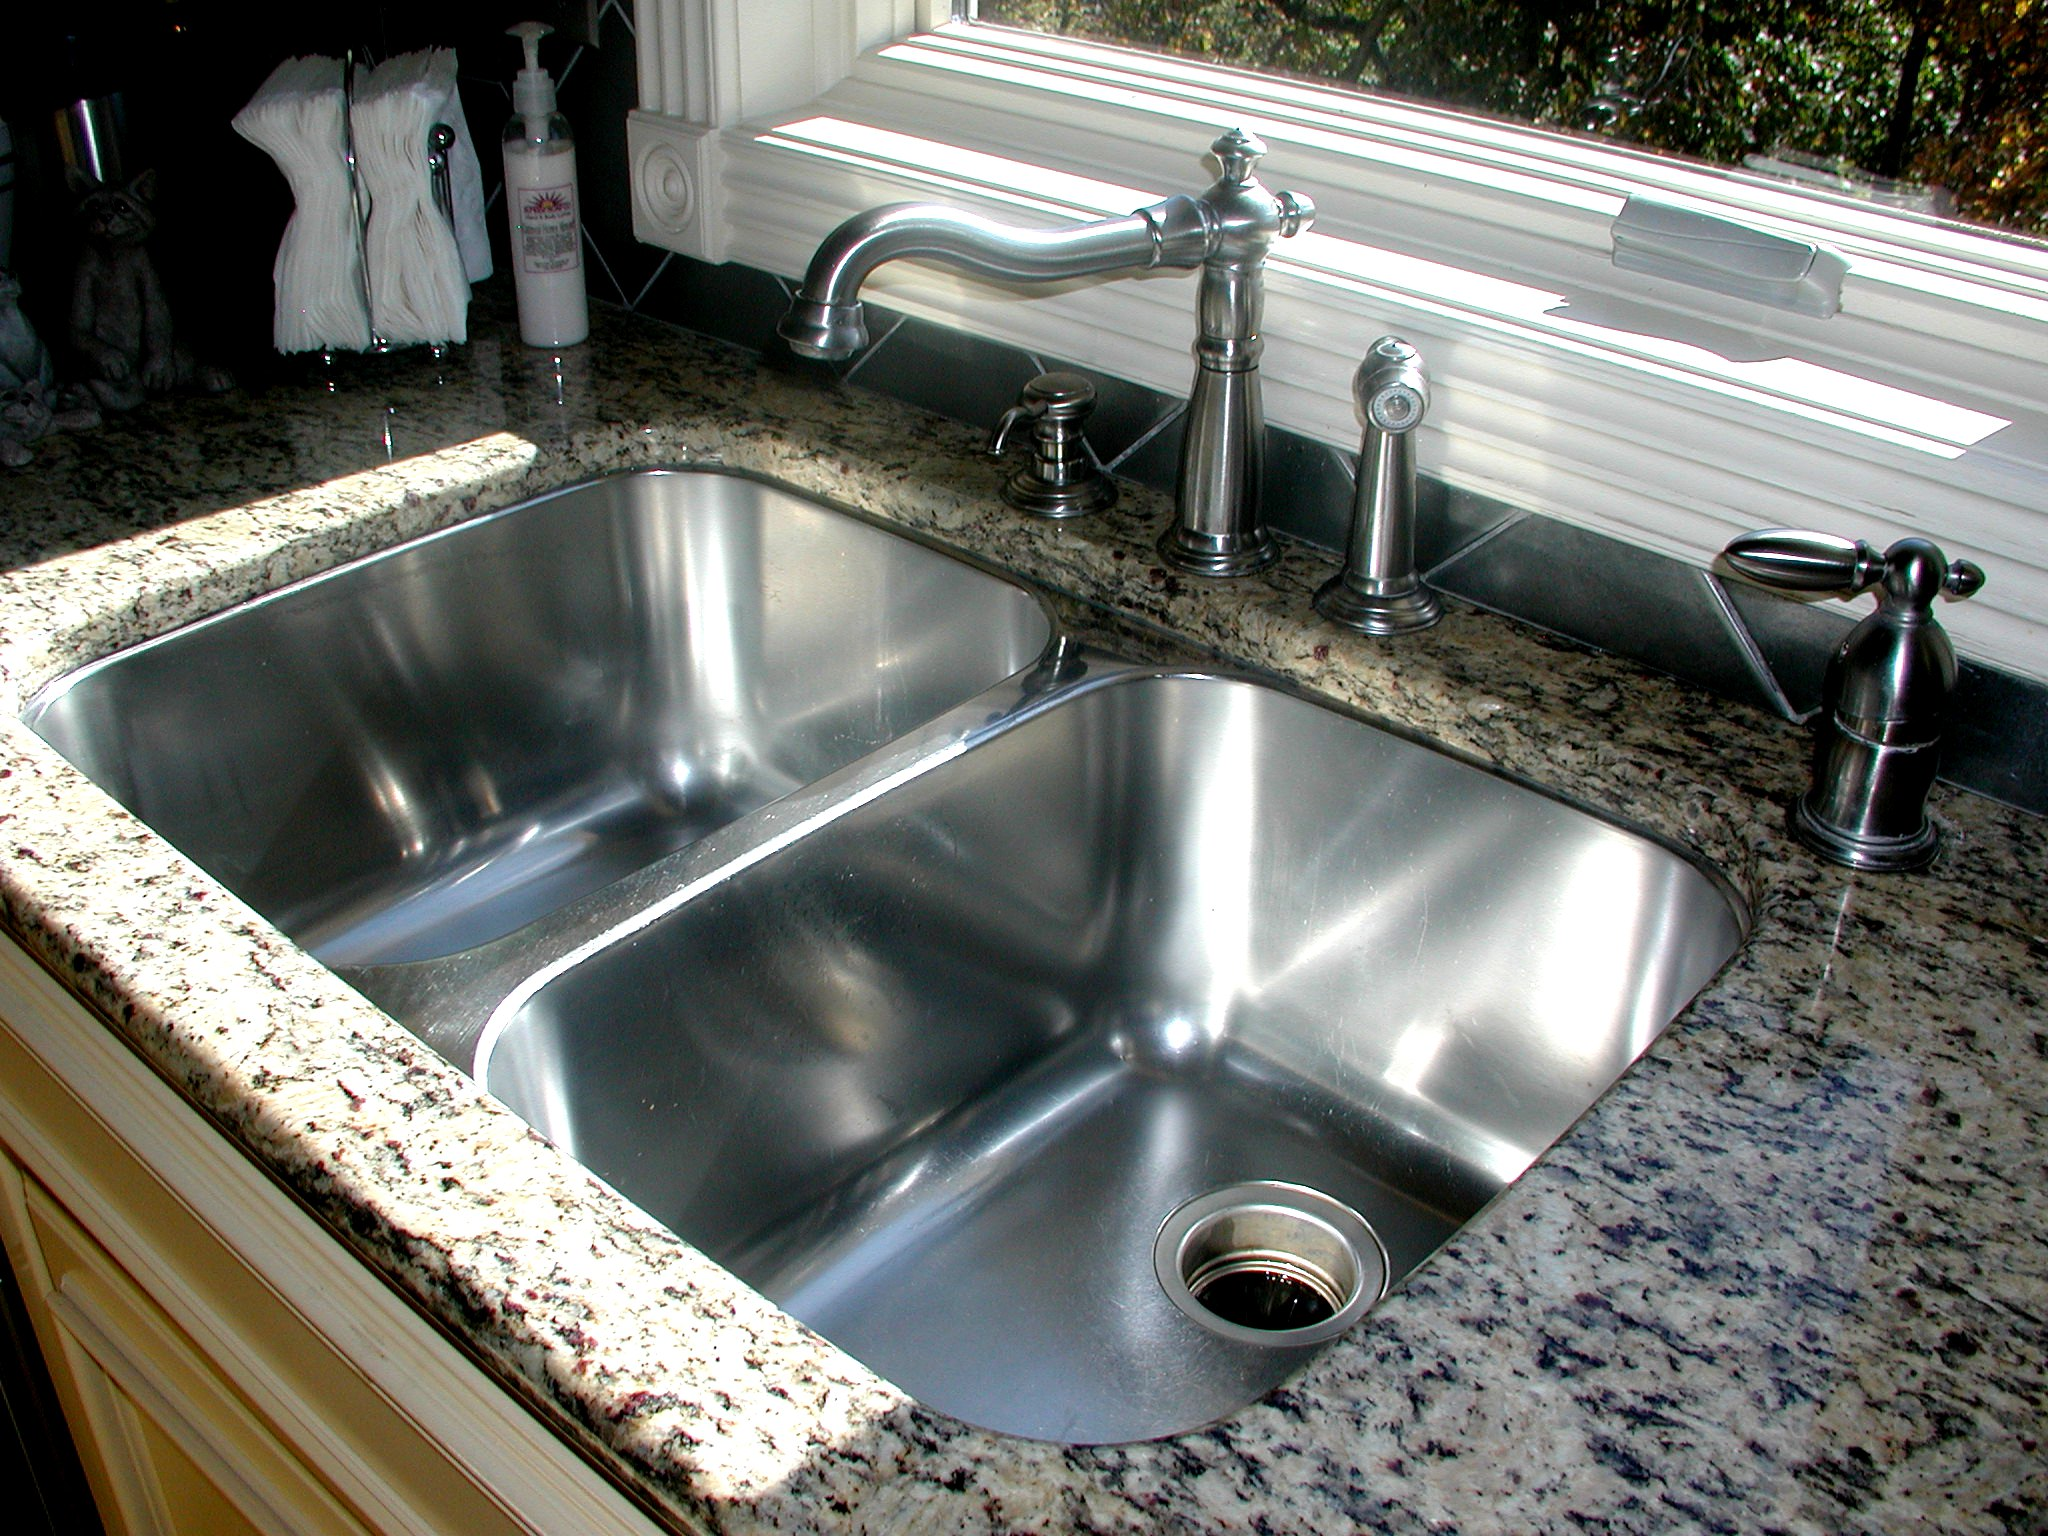 25 Creative Corner Kitchen Sink Design Ideas on teka 15x15 bar sink, corner kitchen pantry, corner apron sink, unique corner sink, corner refrigerator, corner kitchen designs, corner wall mount sink, corner kitchen appliances, blanco corner sink, corner kitchen hood, corner kitchen light, corner cabinets, two bowl sink, corner kitchen open shelves, corner kitchen shelf, corner kitchen layouts, farmhouse sink, corner sink size, butterfly sink, corner kitchen chair,